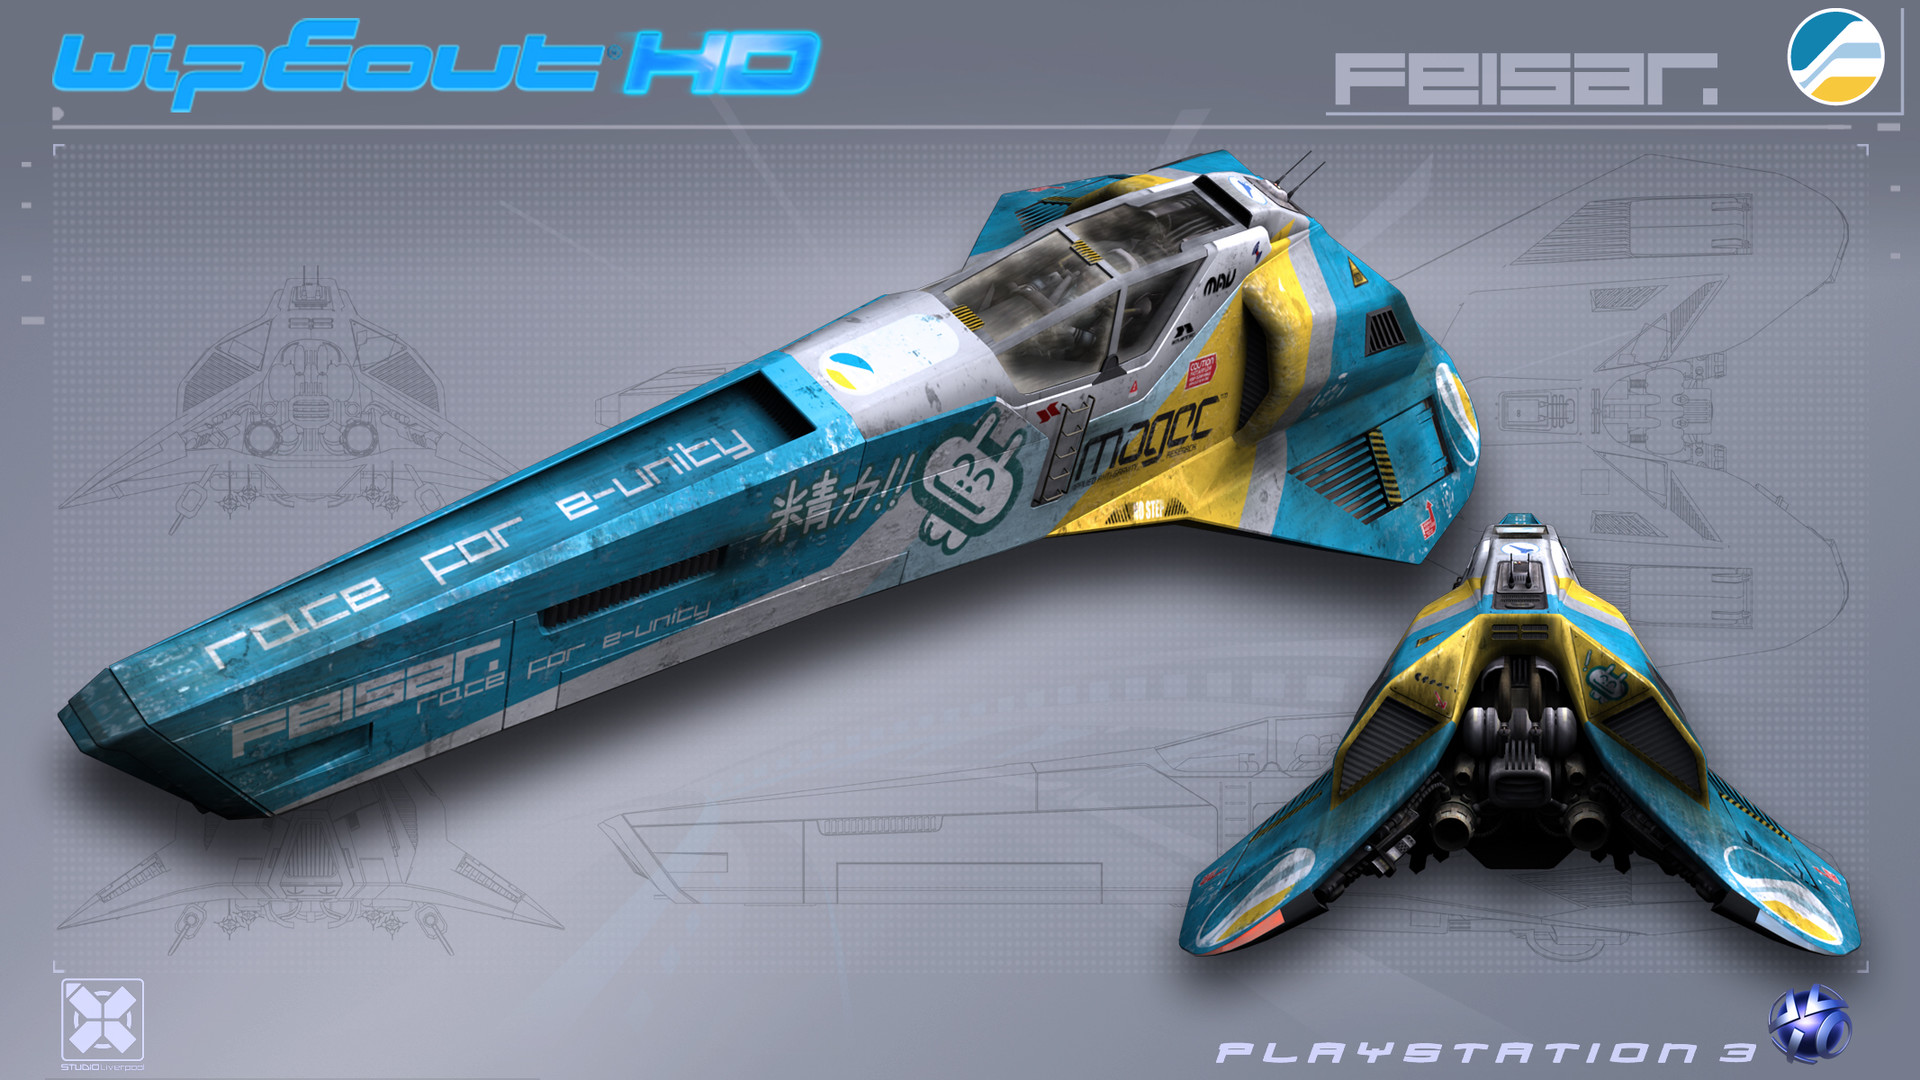 Dean ashley hr wipeout hd feisar